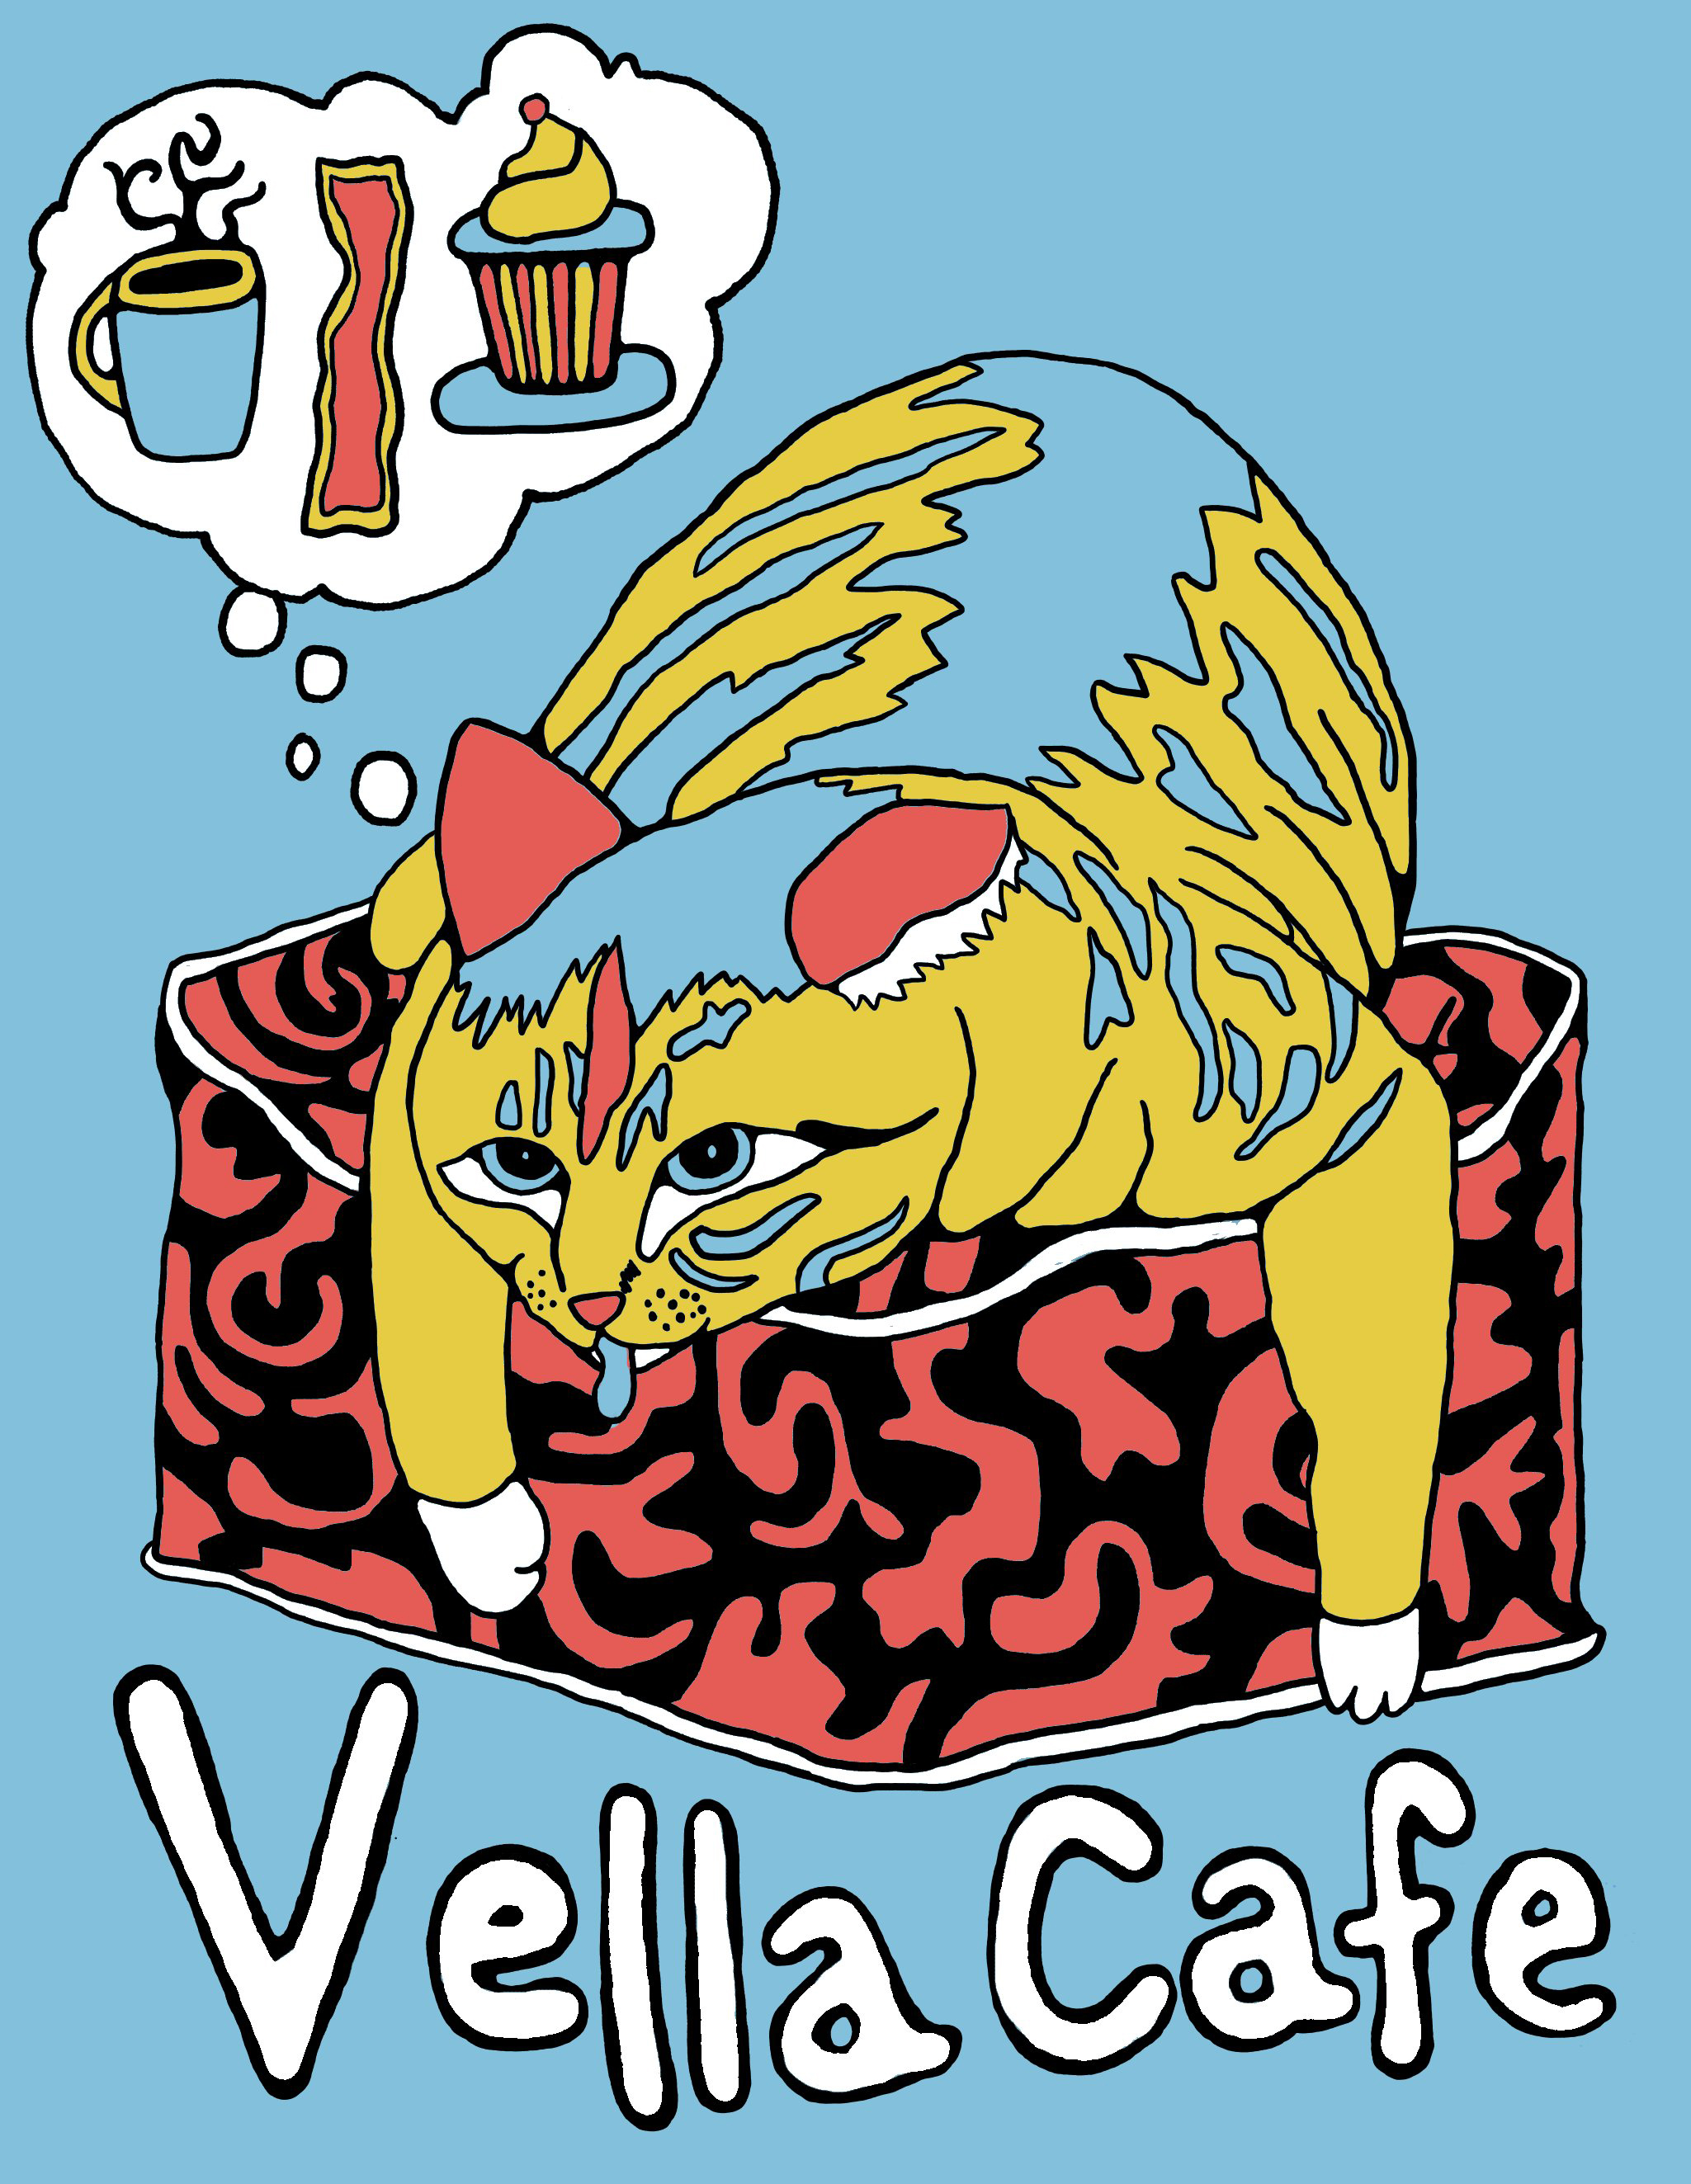 Vella Cafe T-Shirt Design